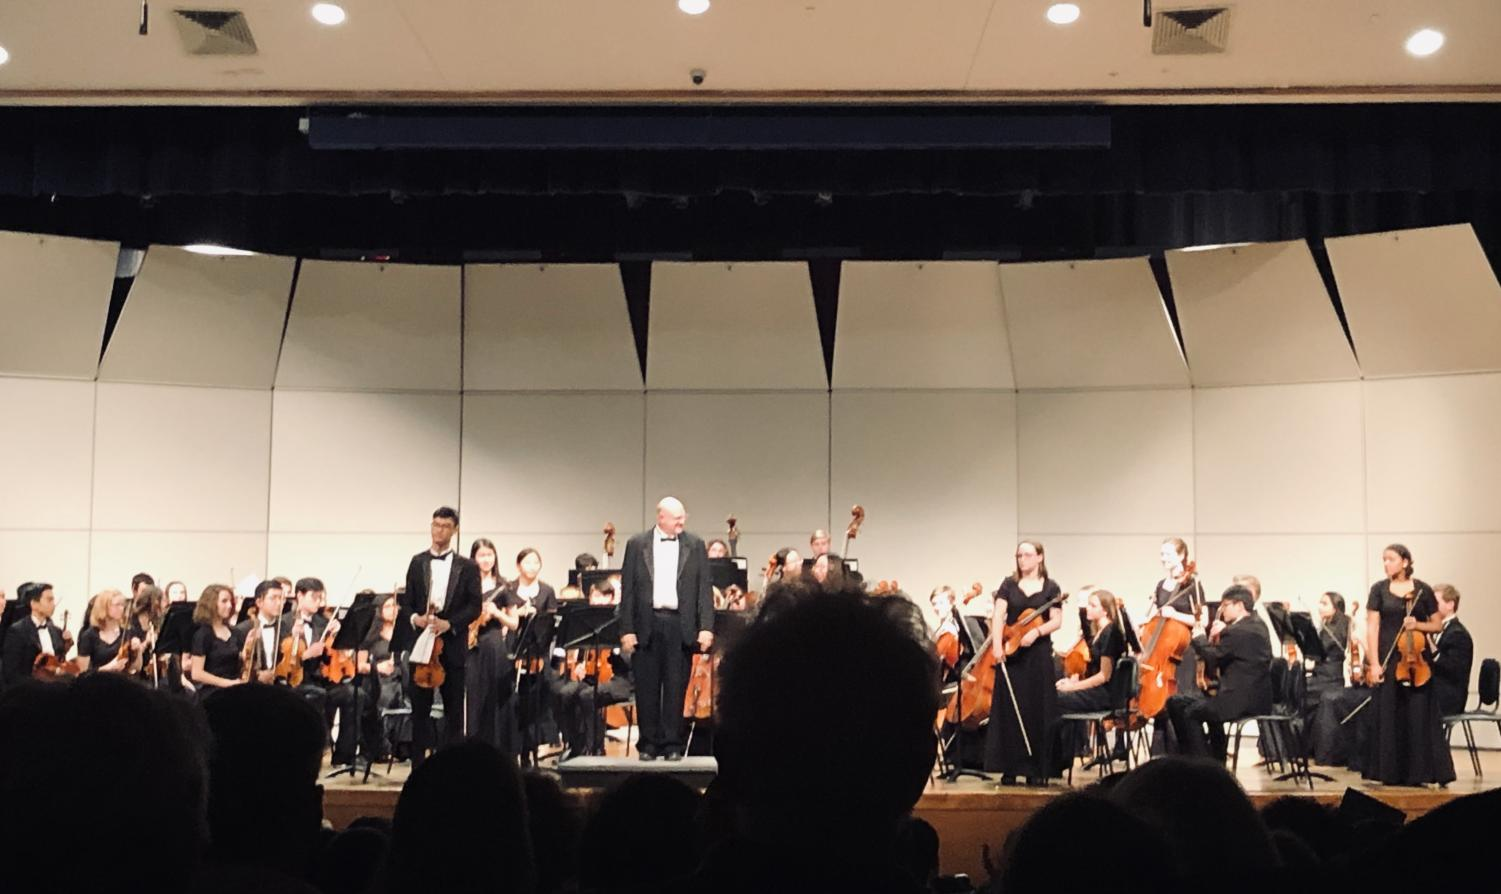 Mr. Phalp directs the orchestra at the Dec. 13 concert.